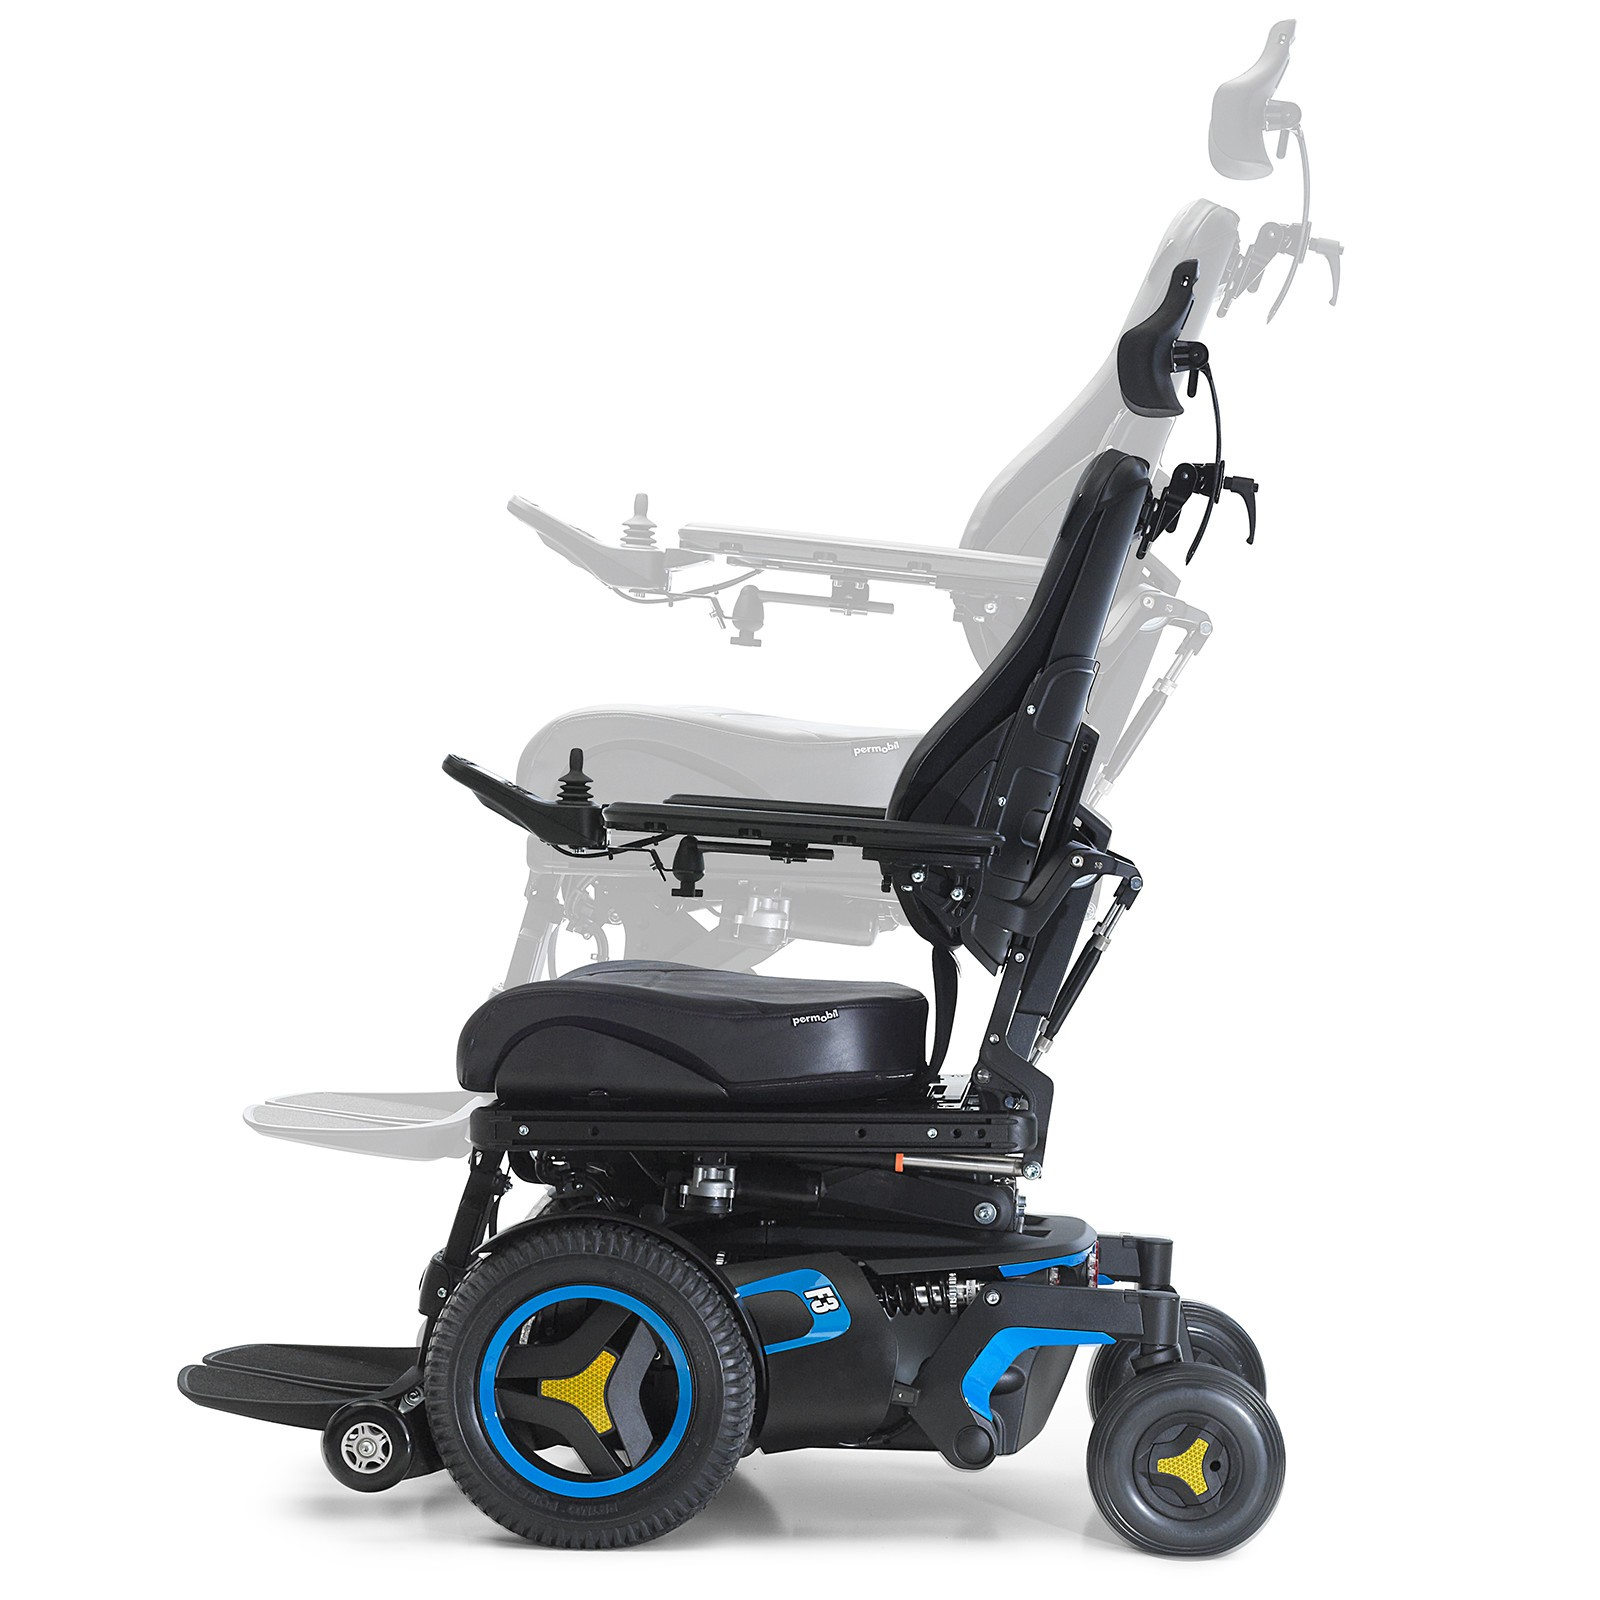 Side view of Blue Permobil F3 Corpus Front Wheel Power Wheelchair